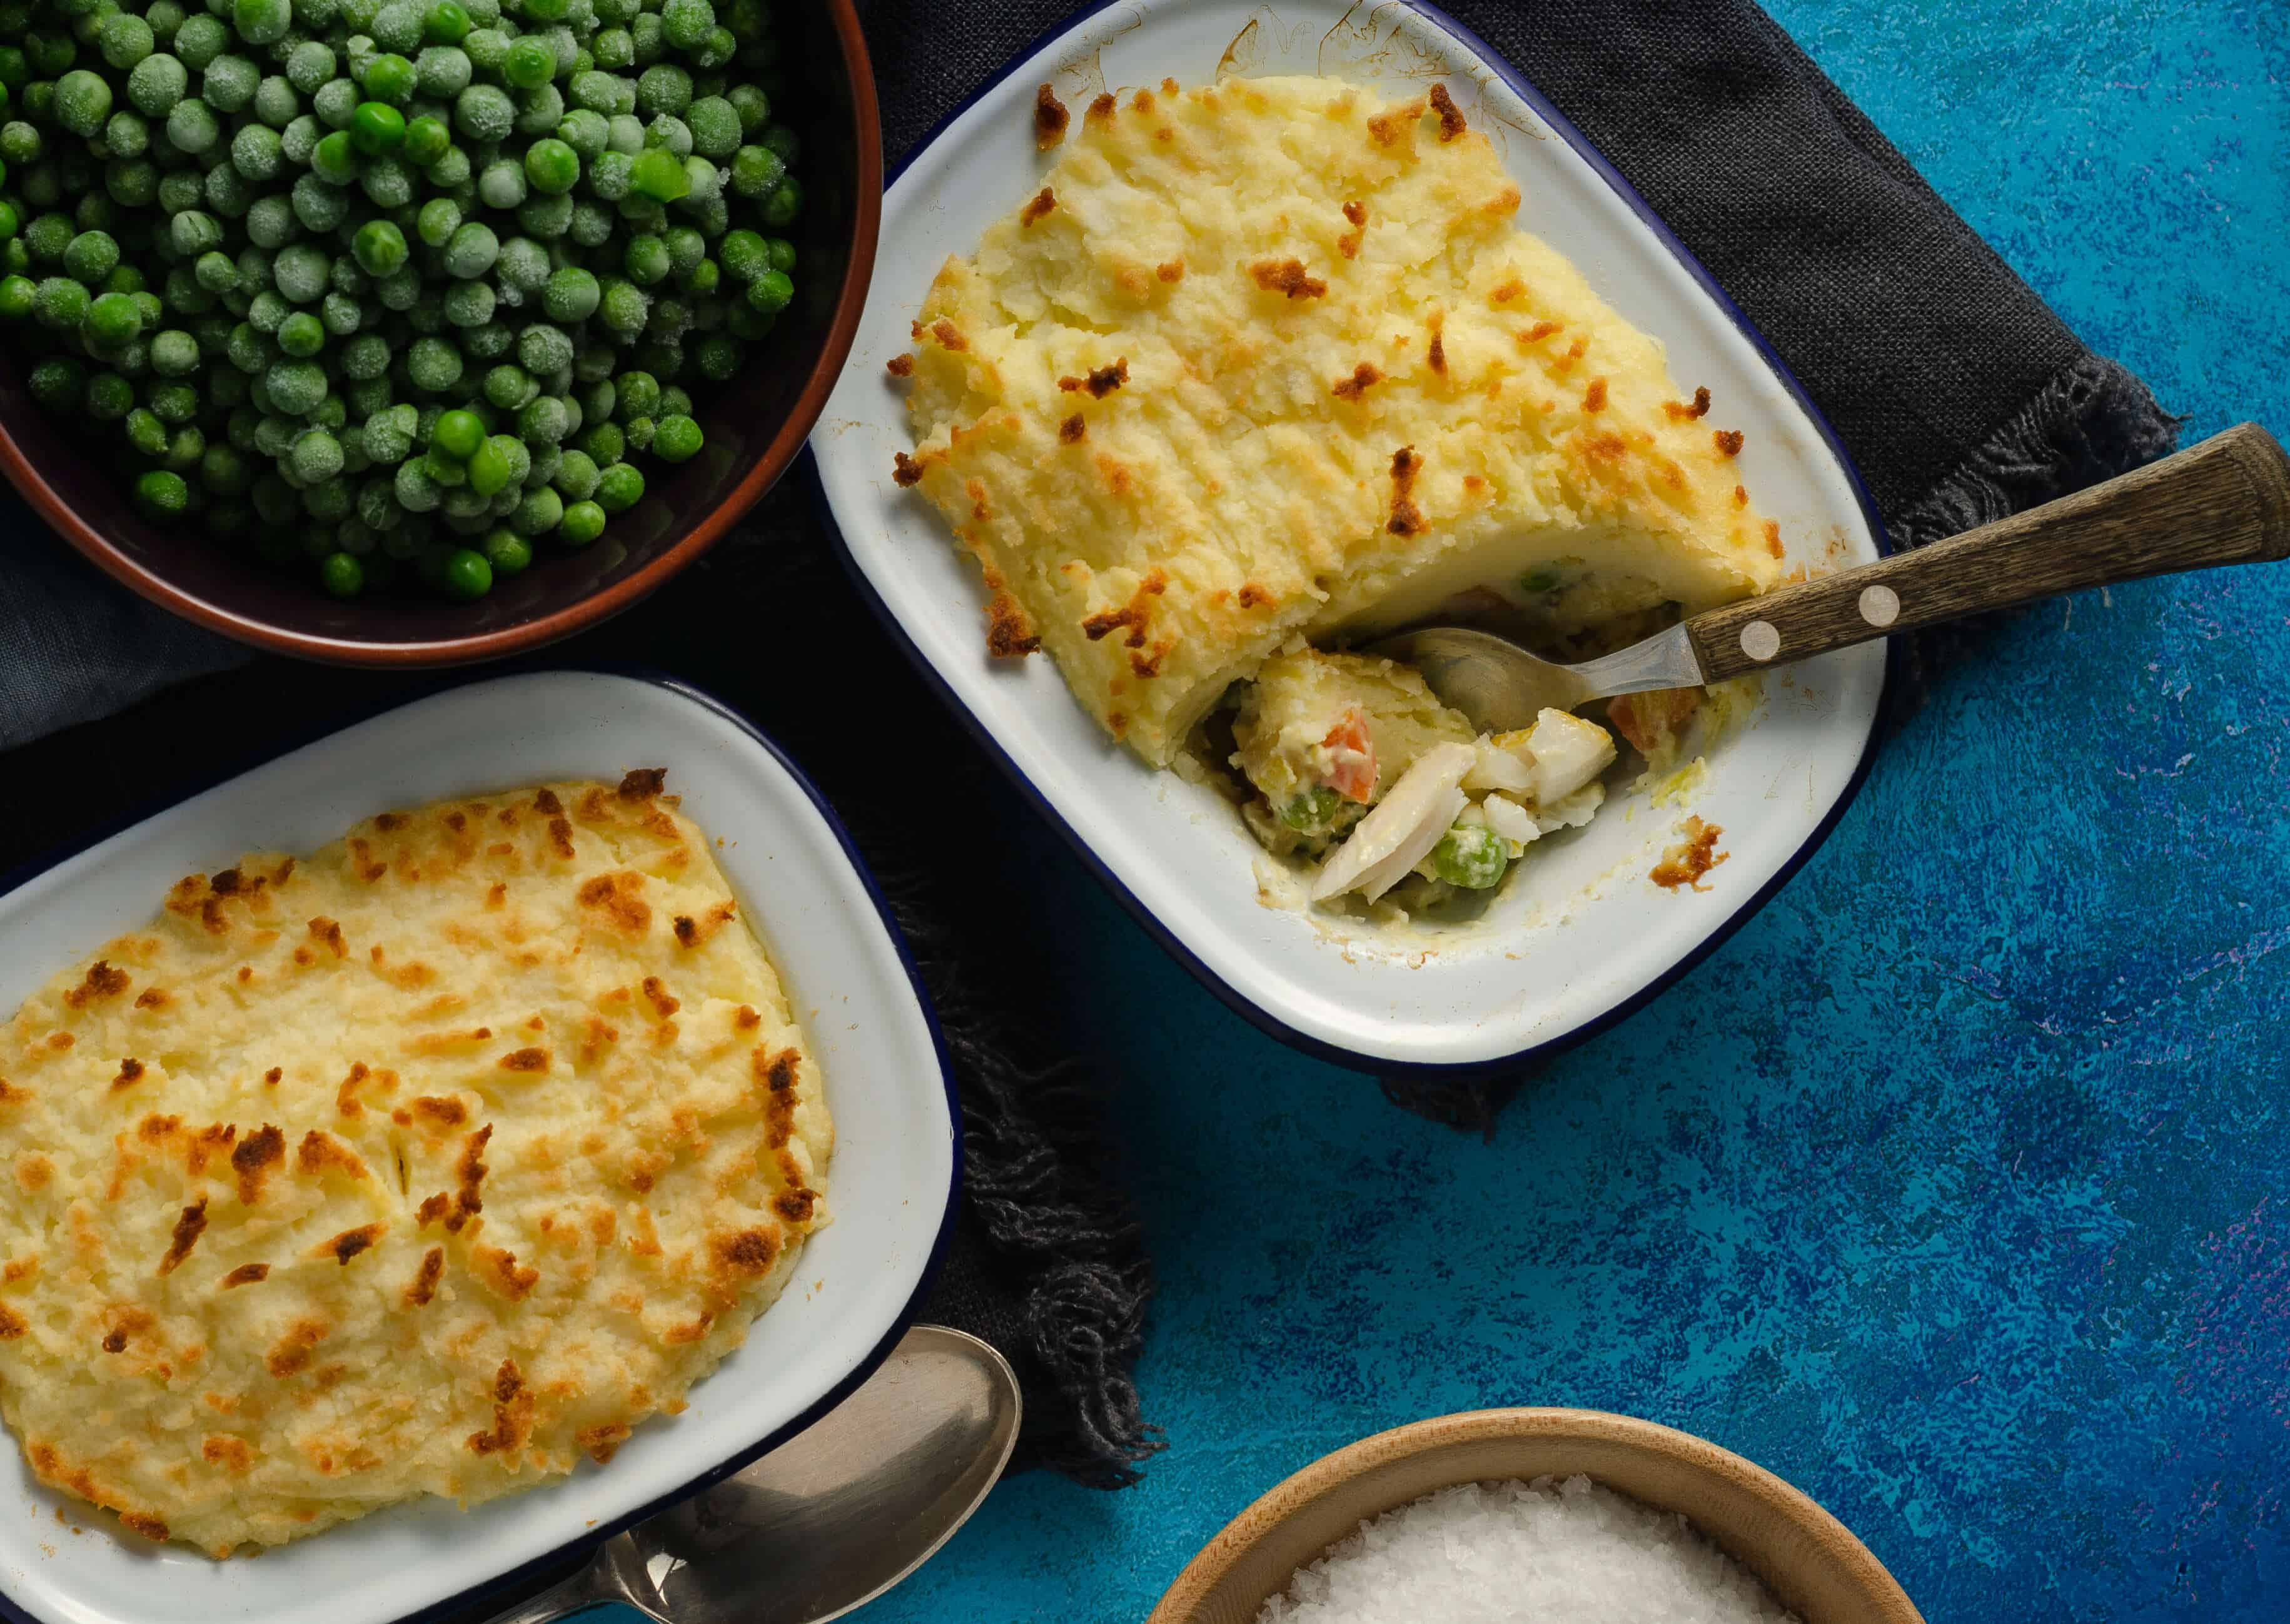 2 portions of fish pie, a blue background, salt and a large bowl of peas, with a spoon dipping into one pie to show the large pieces of fish.